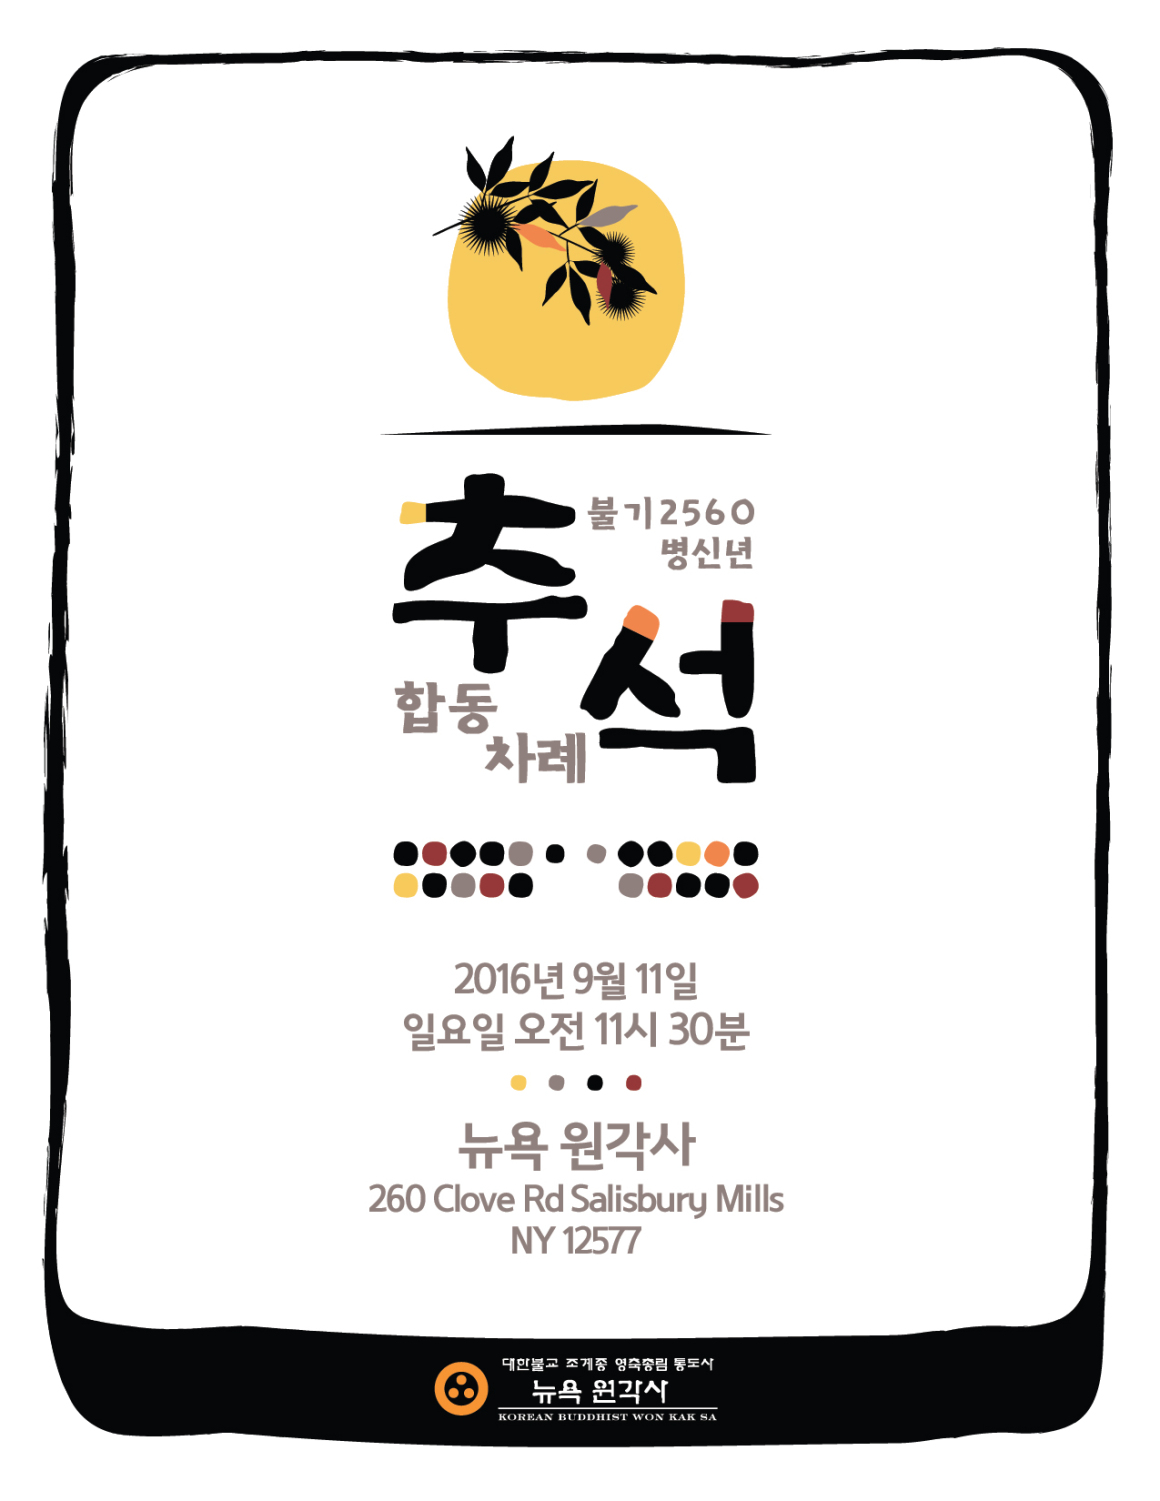 BE2560 Korean Thanksgiving Prayer불기 2560년 추석 - September 11th, 2016 at 11:30AMChuseok (Harvest festival) is the biggest and most important traditional holiday of South Korea.